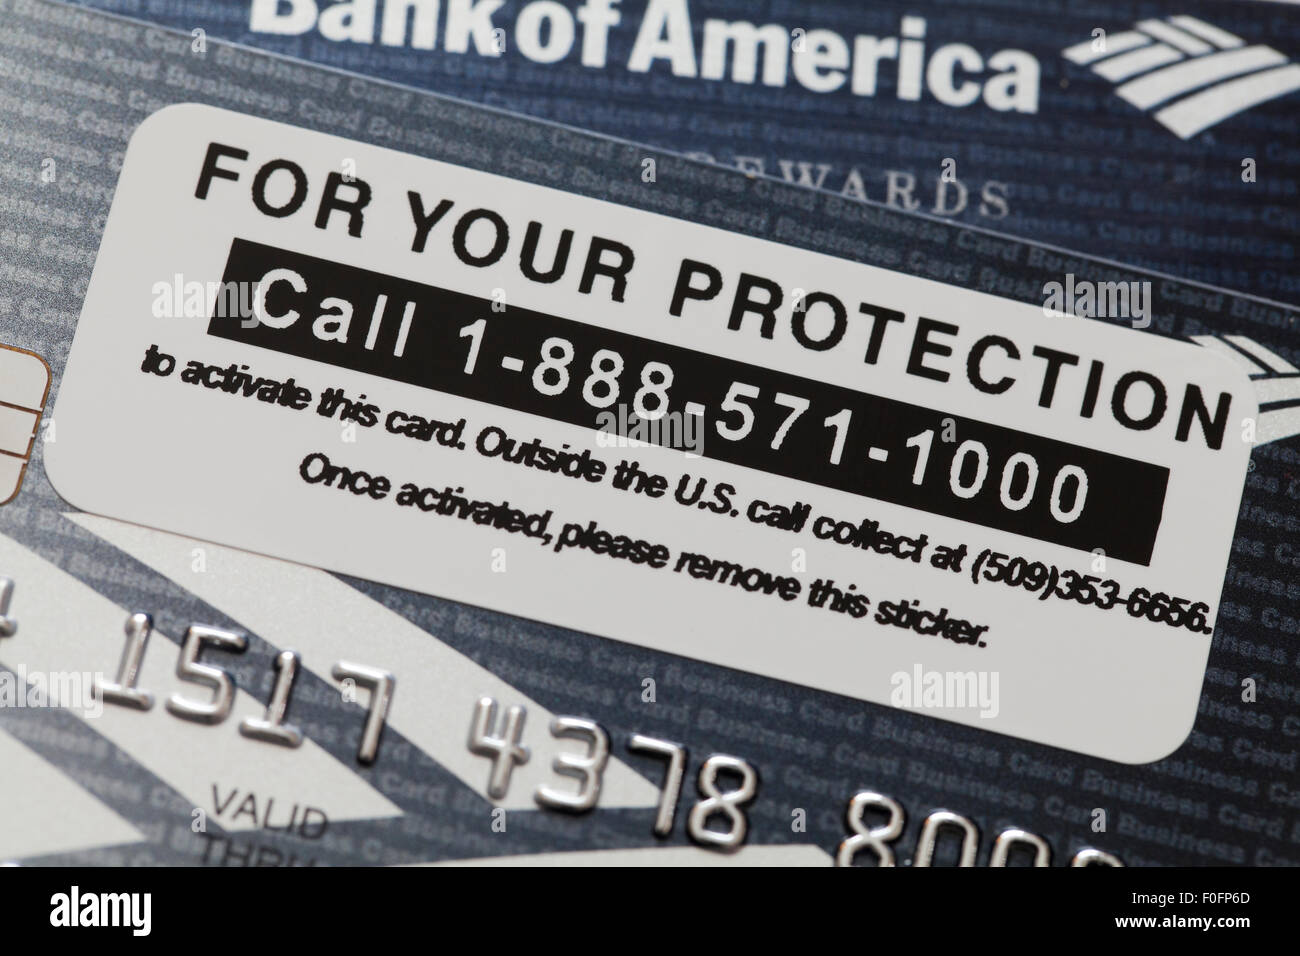 number to activate bank of america debit card